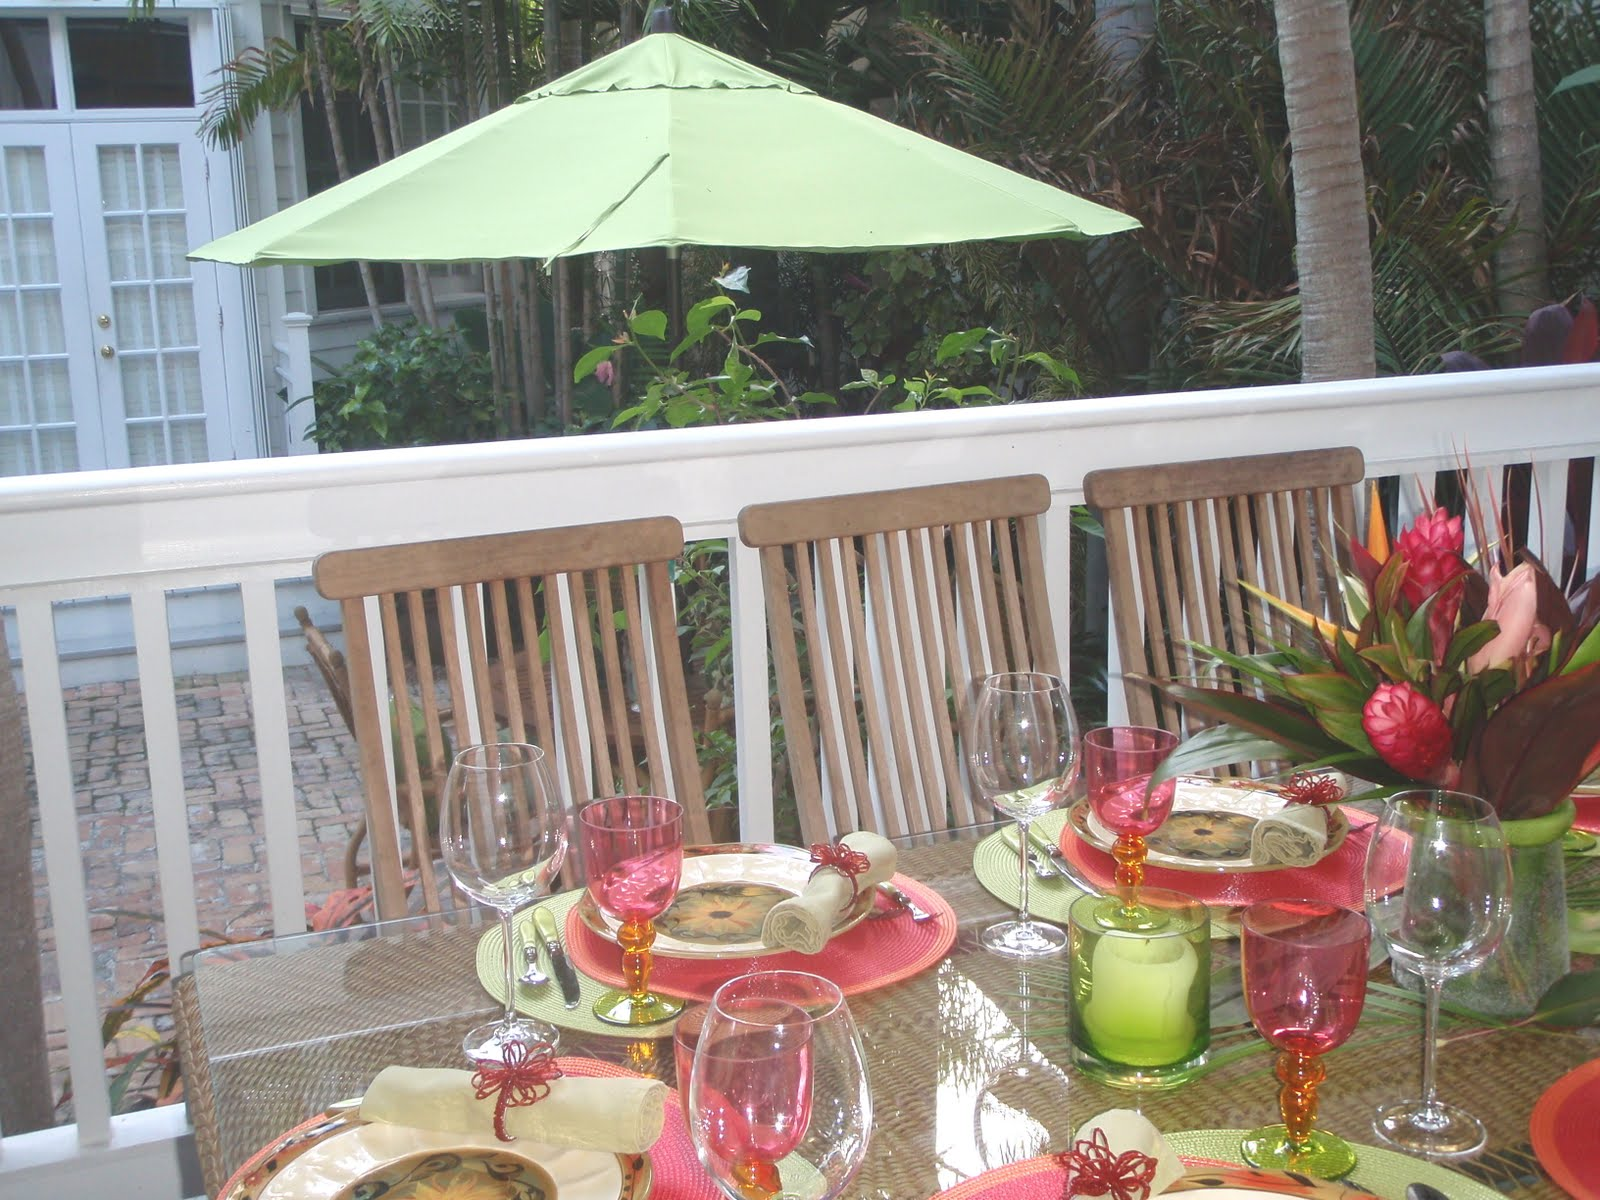 Key West Themed Backyard : style key west outdoor entertaining at mary ann s style key west